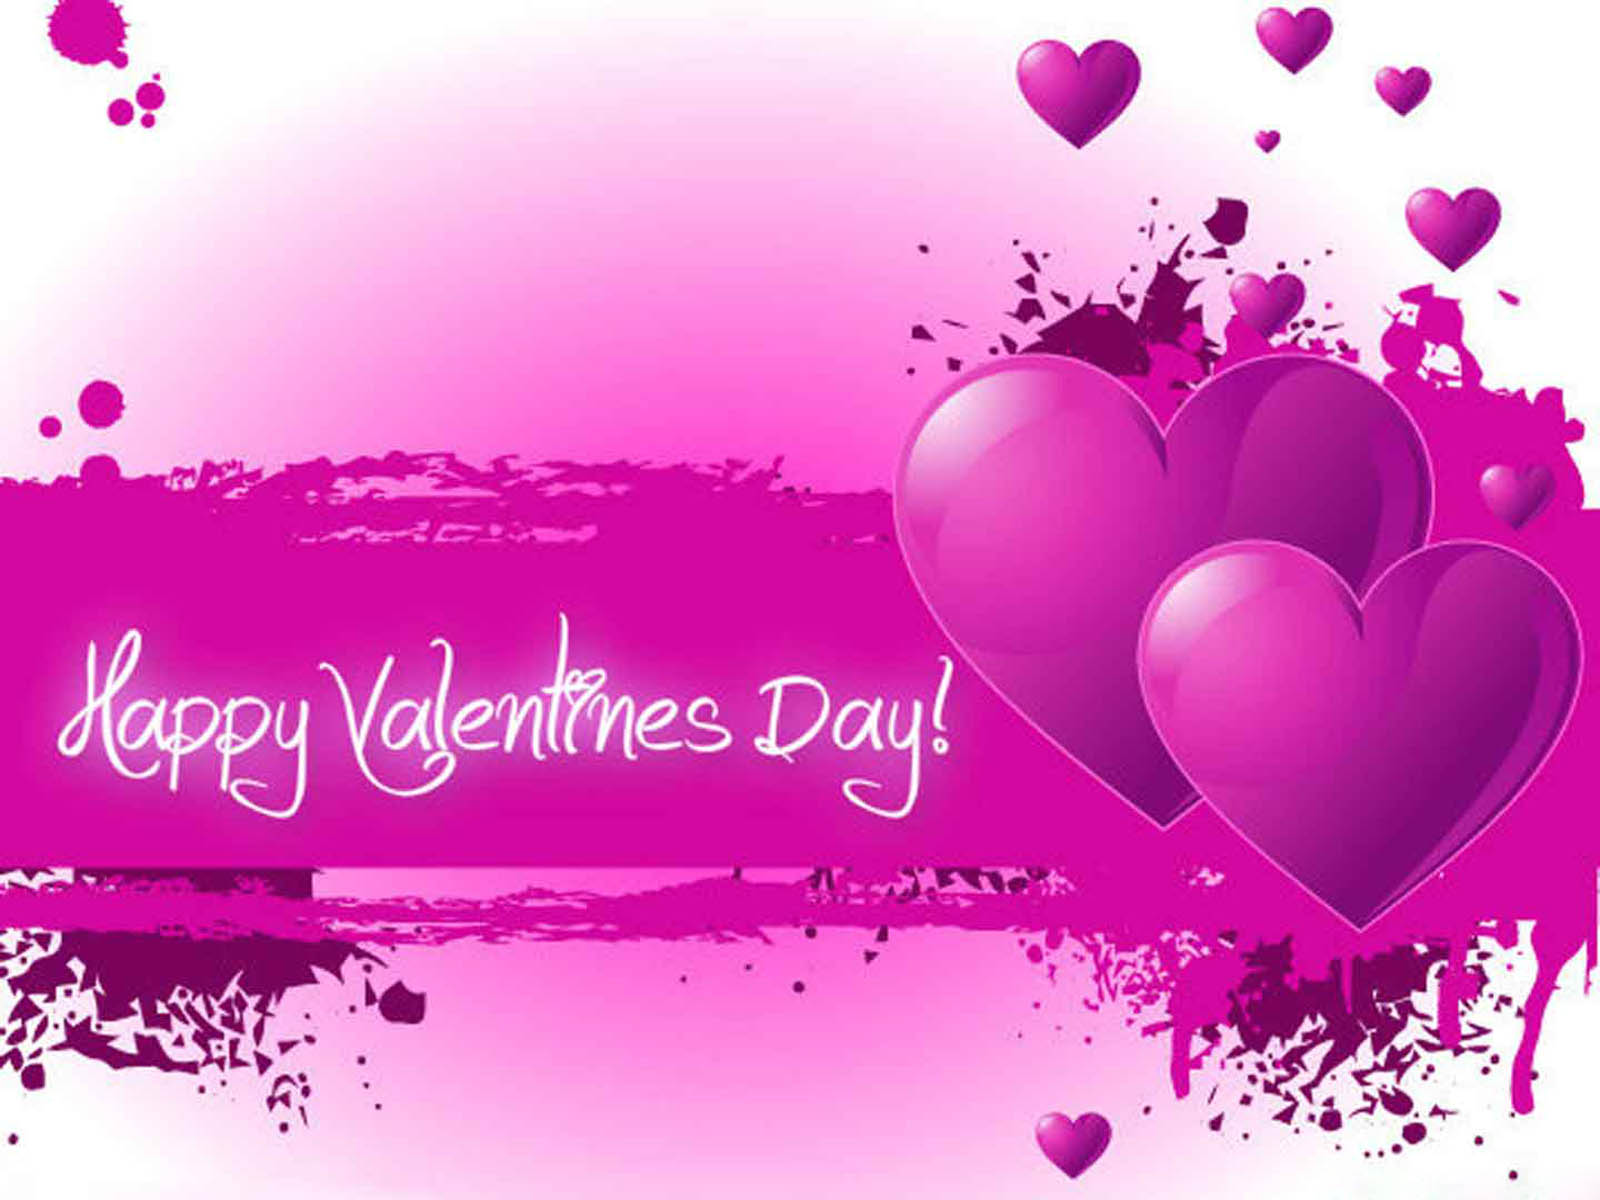 Wallpaper valentines day wallpapers 2013 - Background for valentine pictures ...